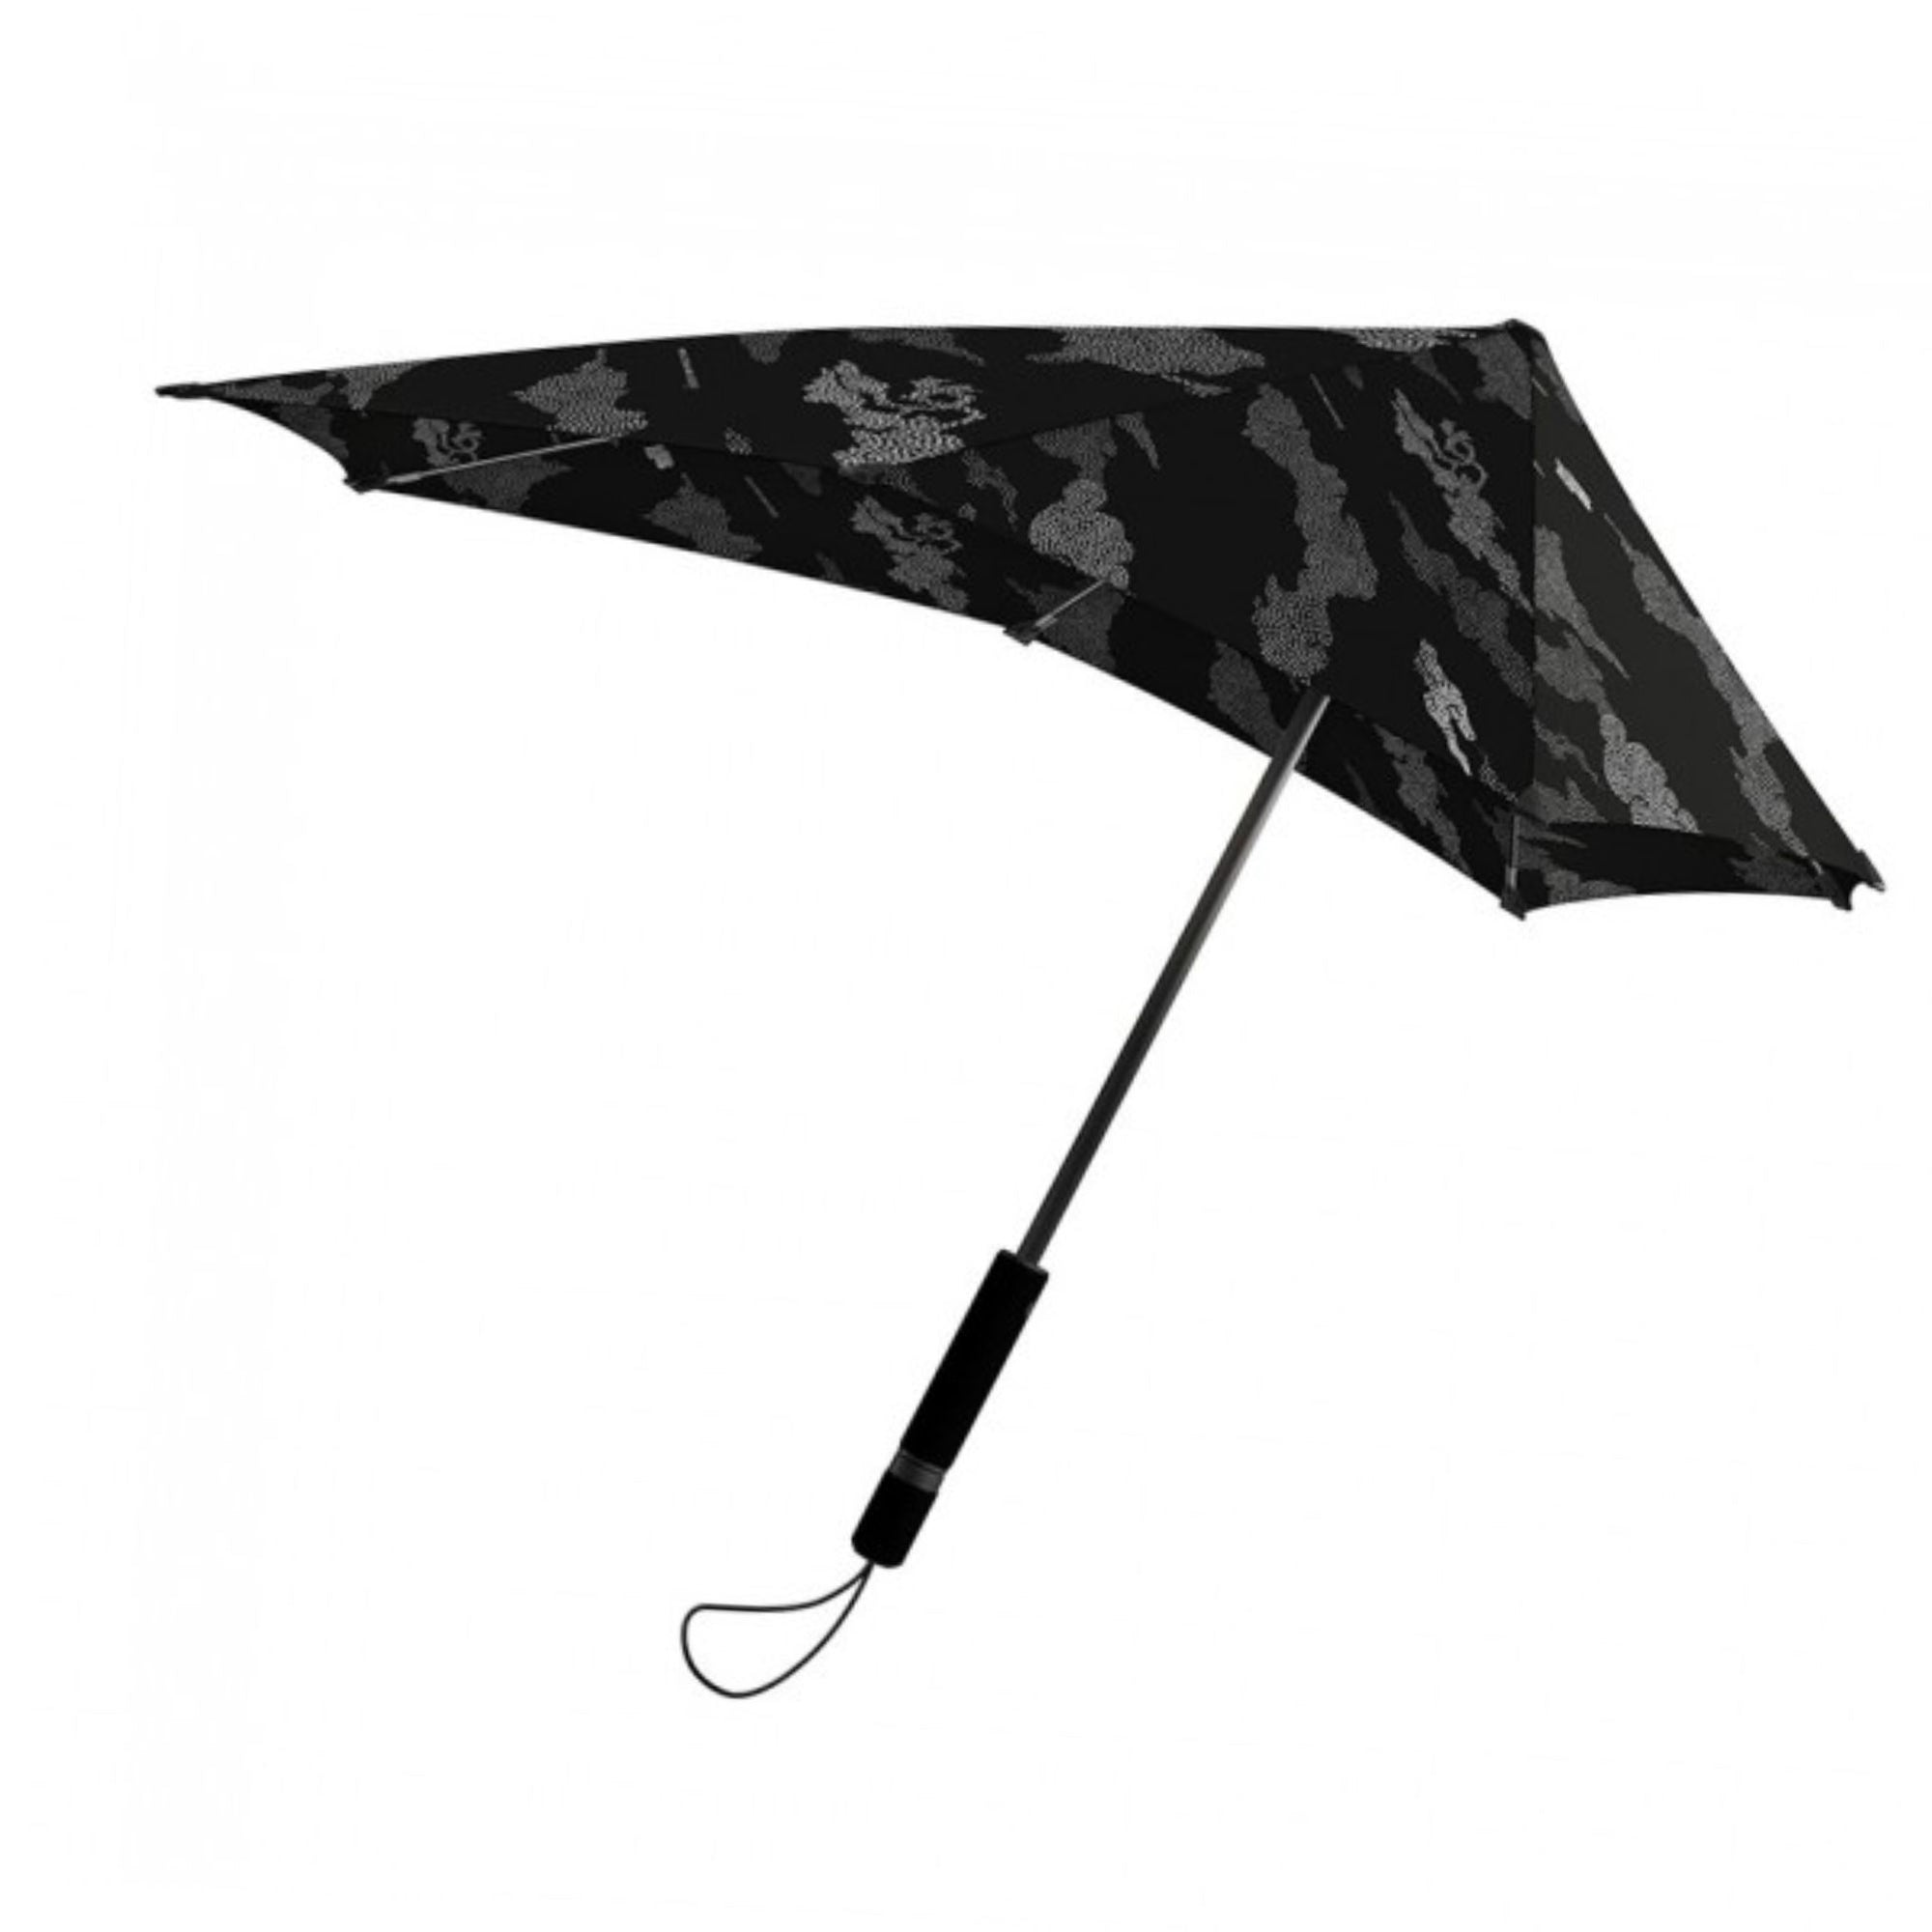 Senz° X DPM Original storm umbrella, pointillist bonsai